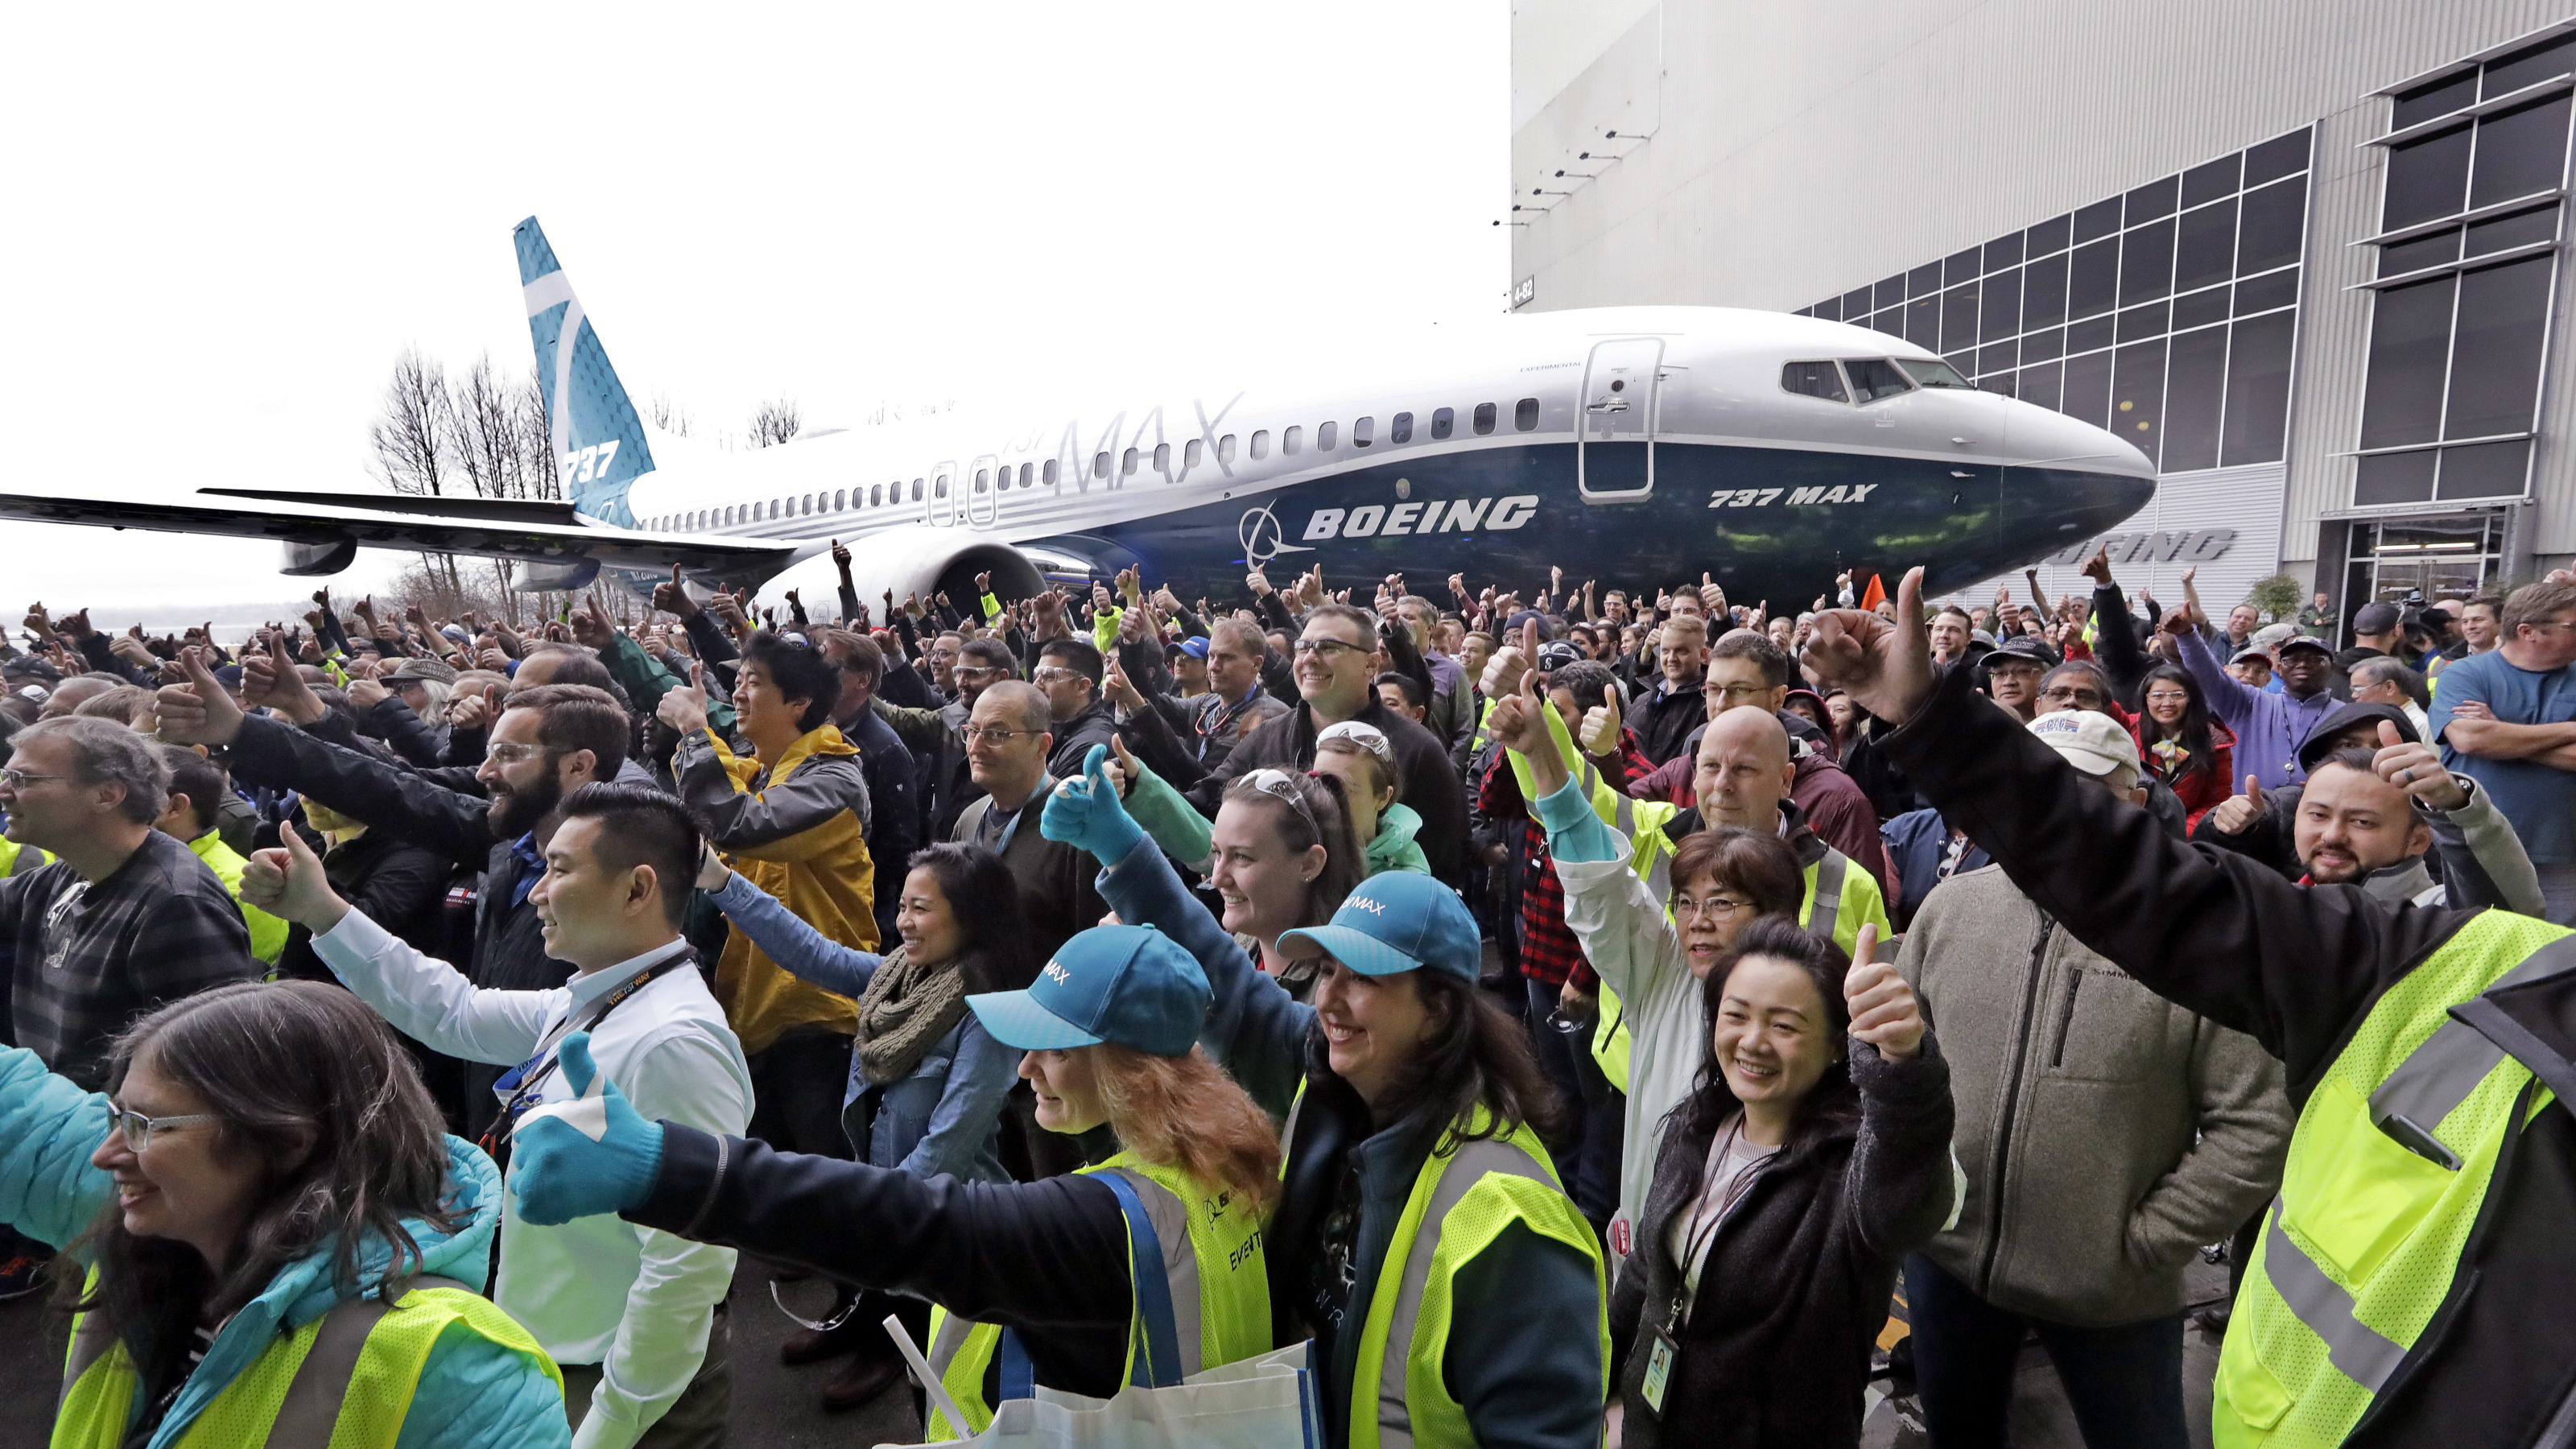 Boeing workers pose in front of a Boeing 737 MAX 7, the newest version of Boeing's fastest-selling airplane, for a group photo during a debut for employees and media of the new jet Monday, Feb. 5, 2018, in Renton, Wash. The company says that the airplane improves on the design of its predecessor, the 737-700, with more capability, range and seats. Following upcoming flight tests, it is expected to be delivered to airline customers beginning in 2019.